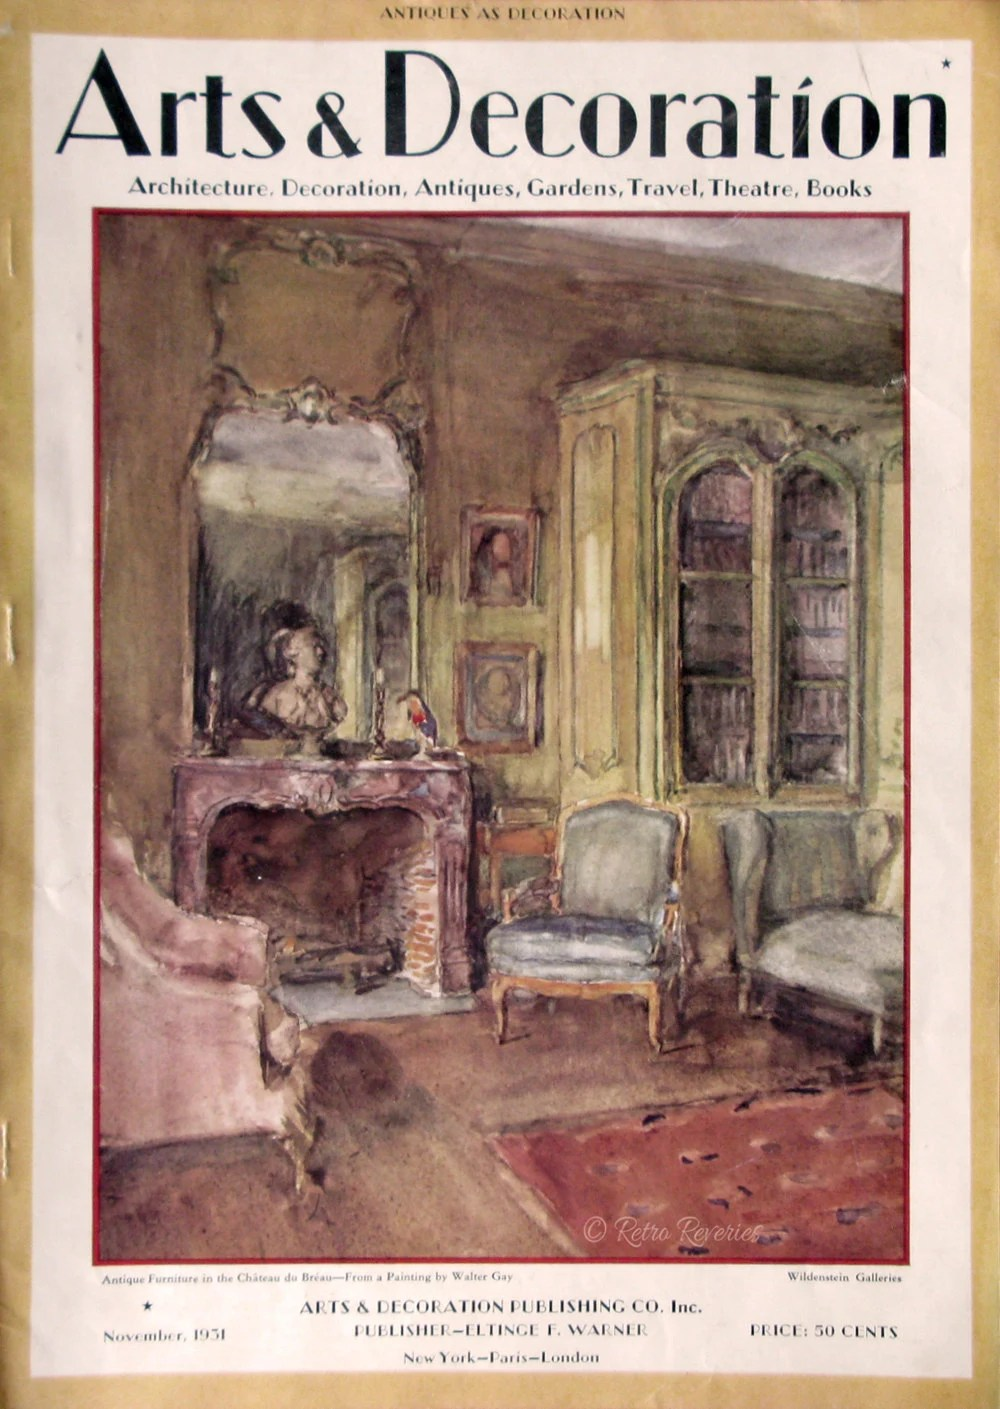 Magazine Art & Décoration 1931 Arts Decoration Magazine Cover Walter Gay Art Chateau Du Breau Drawing Room Wildenstein Galleries 1930s Vintage Illustration